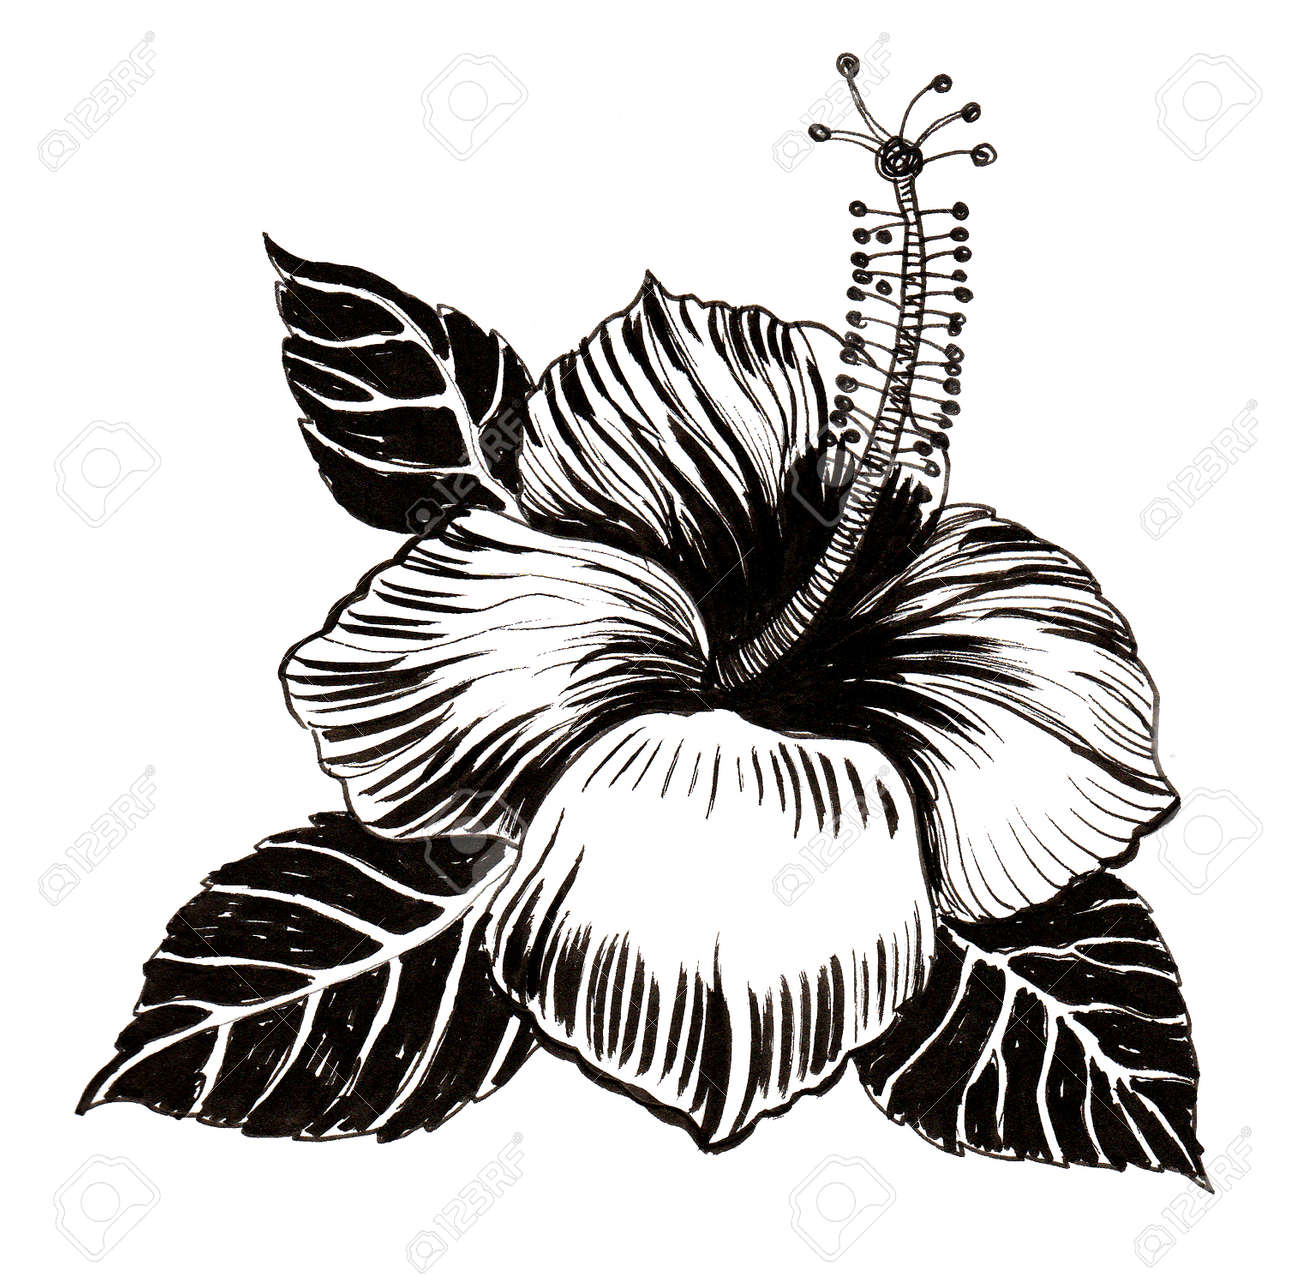 Hibiscus flower ink black and white drawing stock photo picture hibiscus flower ink black and white drawing stock photo 99902499 izmirmasajfo